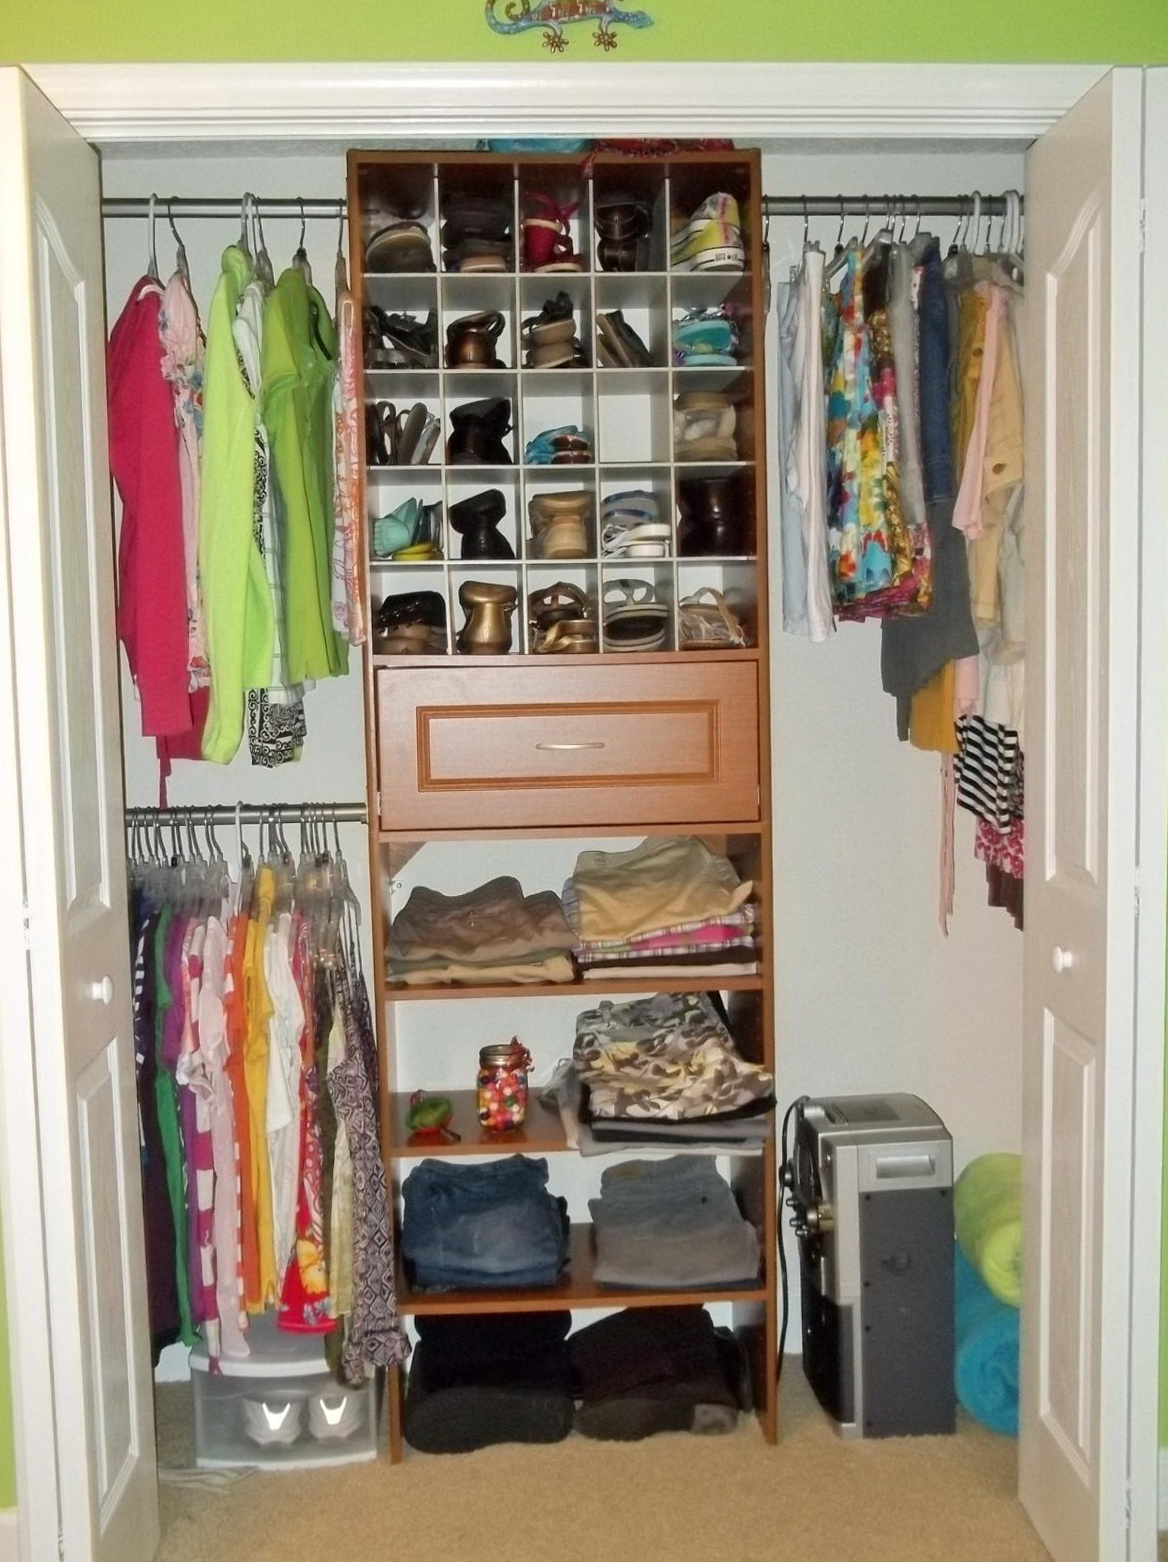 Diy closet organization ideas home design ideas Diy wardrobe organising ideas